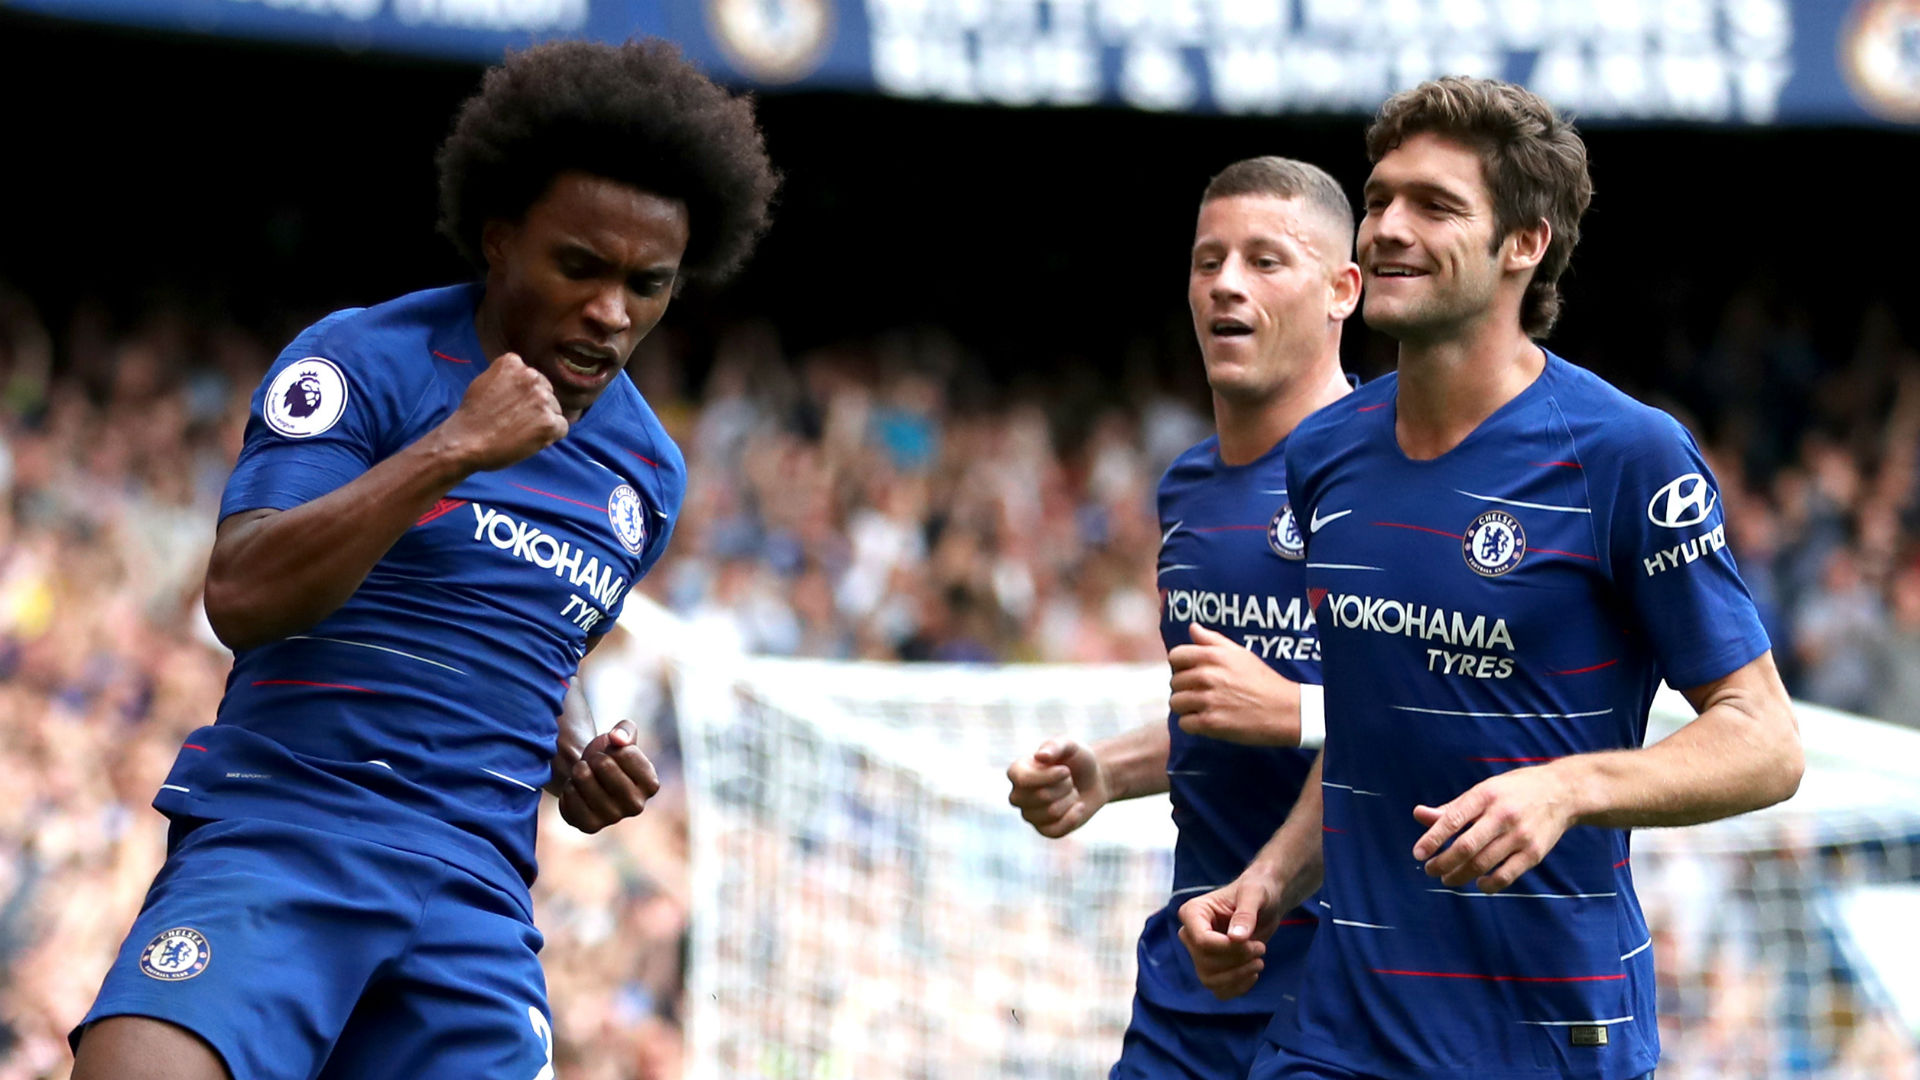 Chelsea end Manchester City's unbeaten run